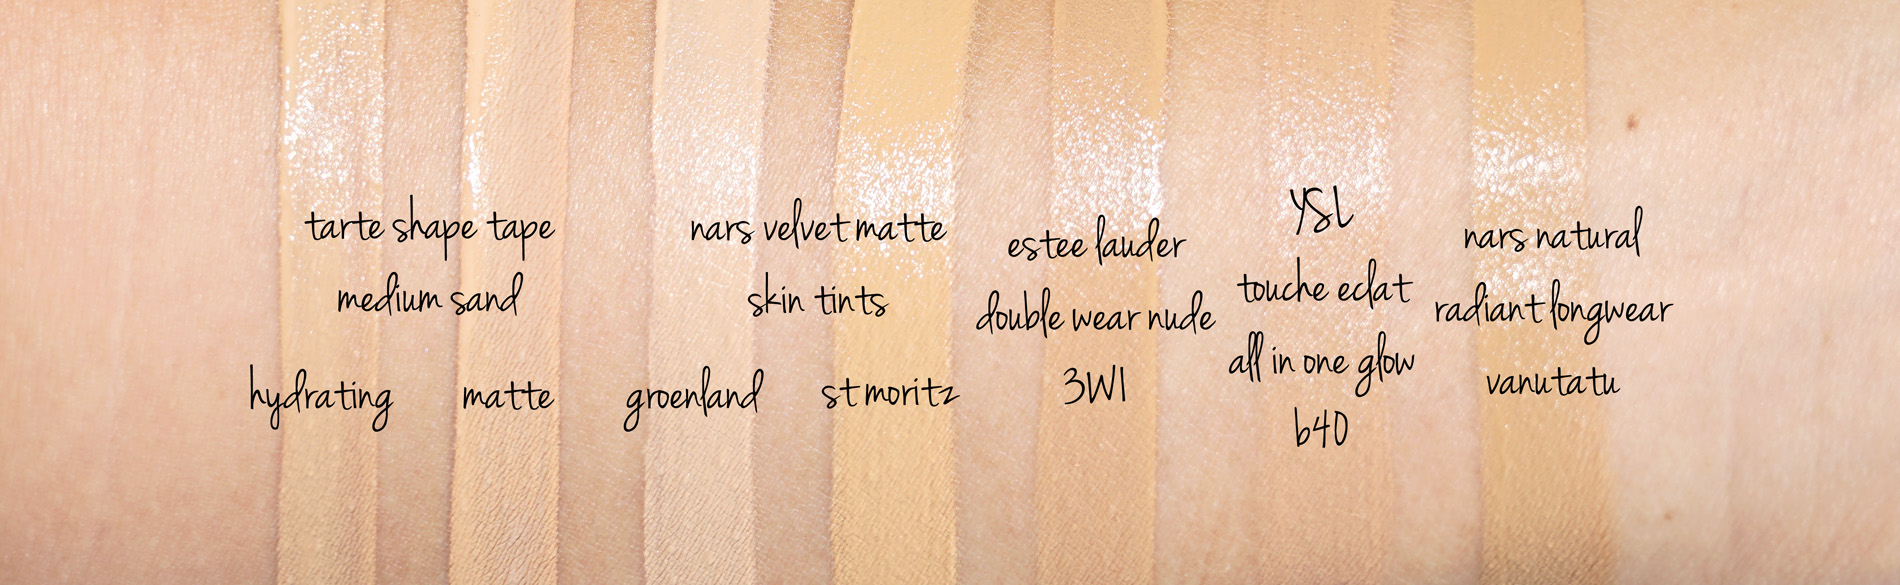 Tarte Shape Tape Foundation And Concealer Review The Beauty Look Book